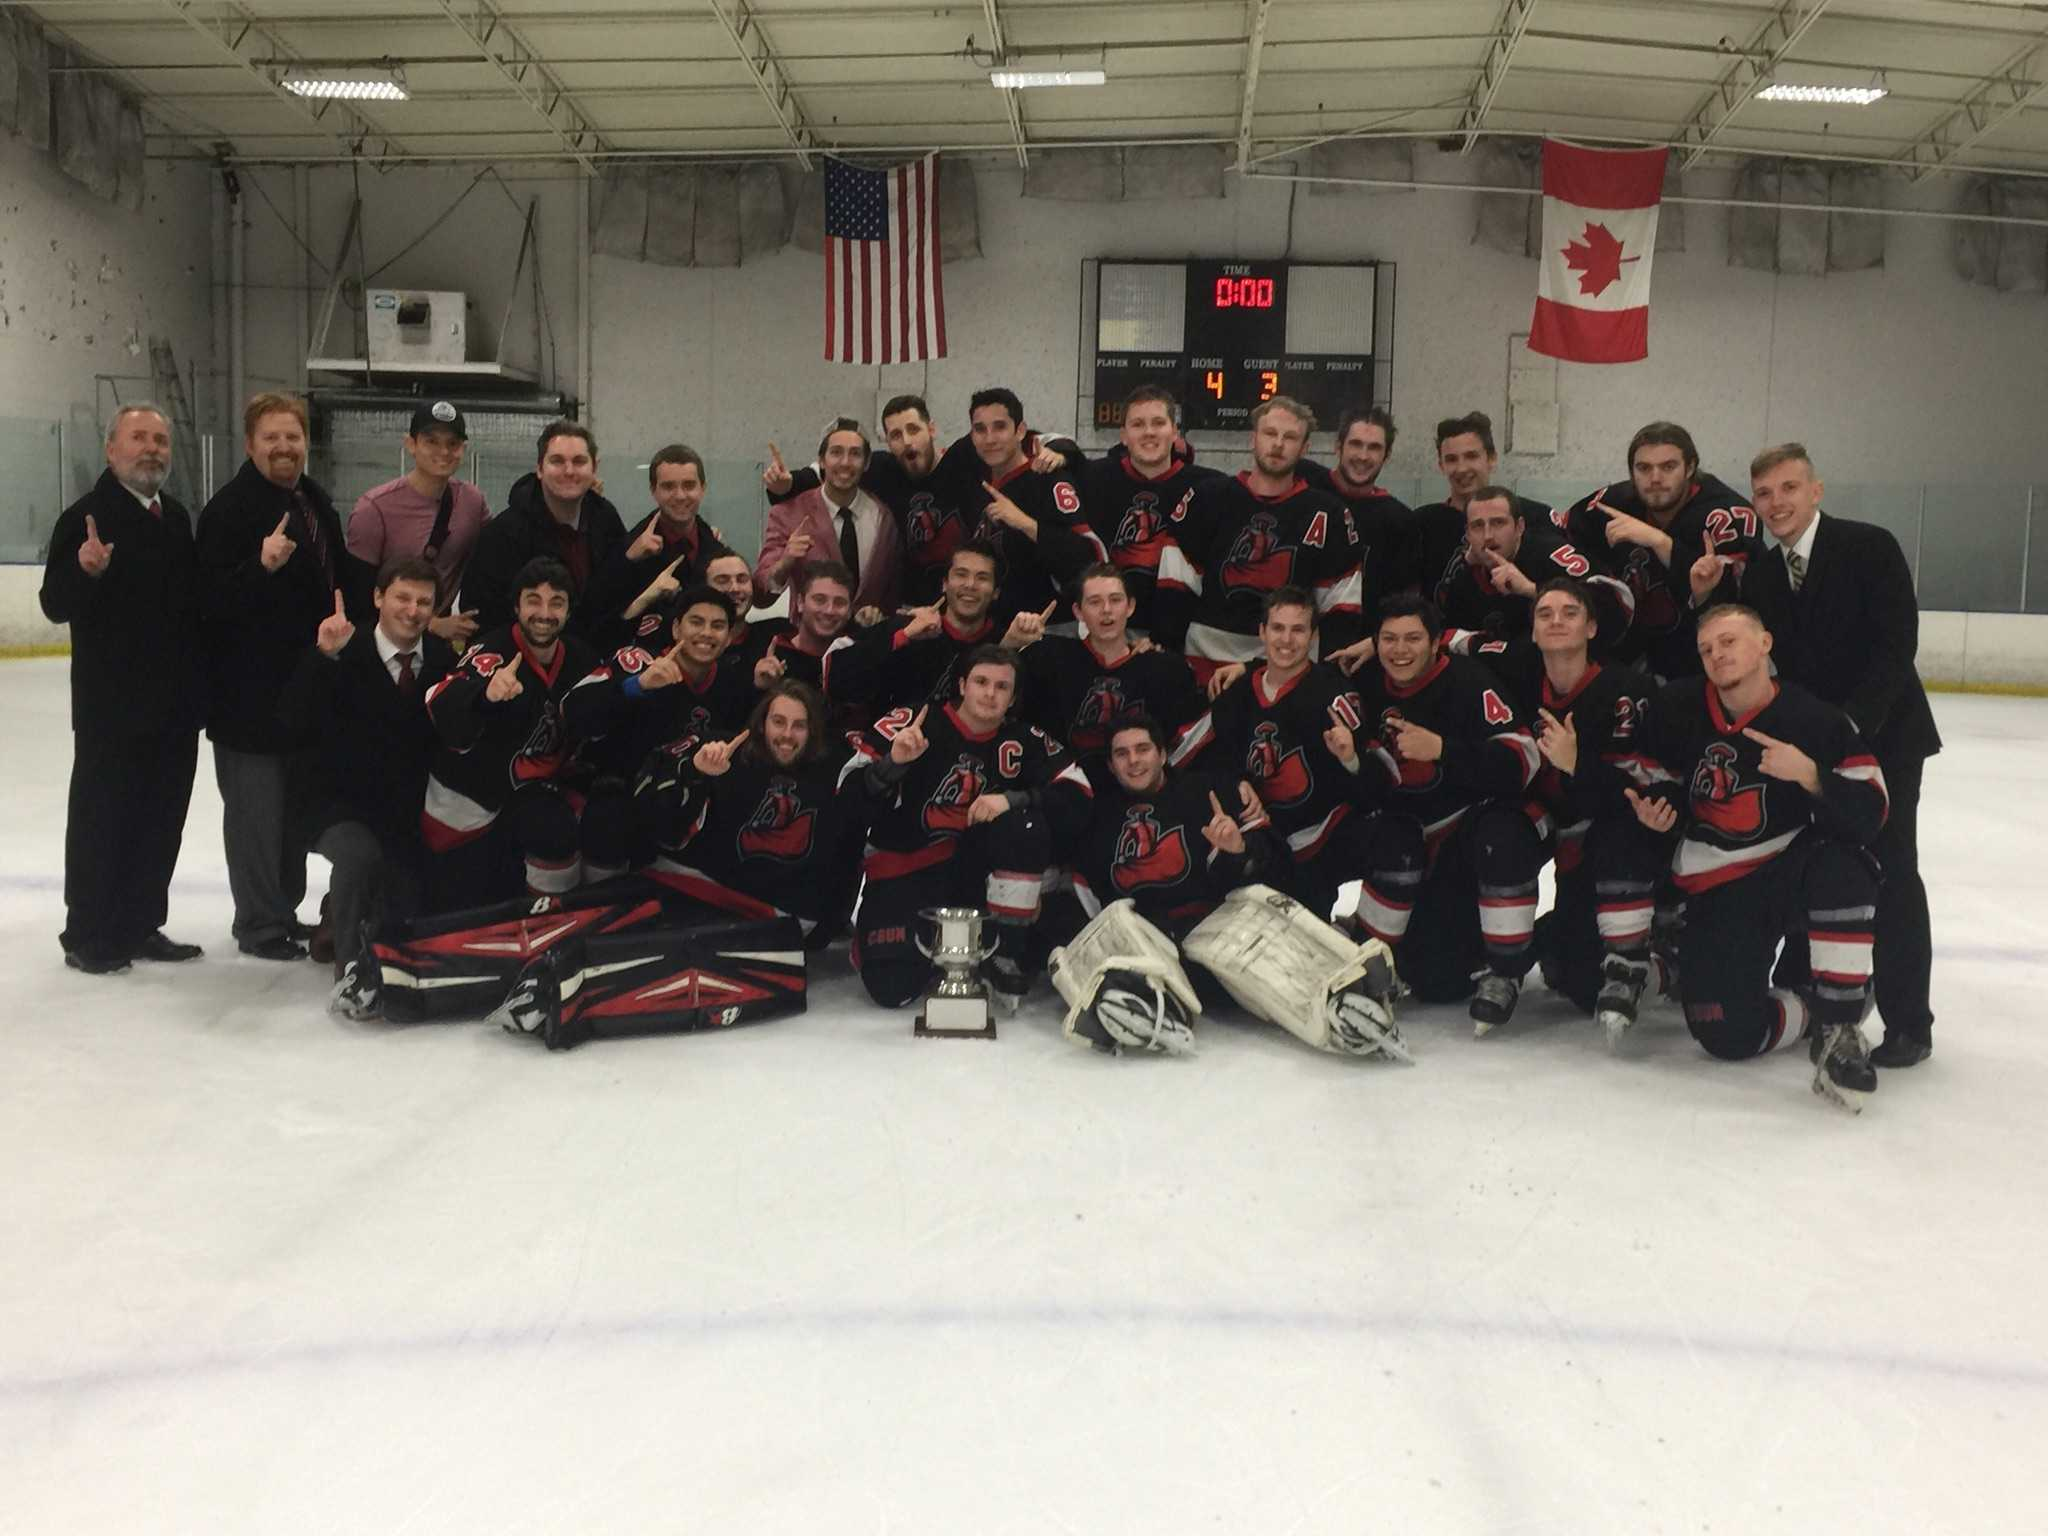 Matadors' players and coaches smile big after being crowned the West Coast Hockey Conference Champions Saturday afternoon at the Iceoplex in Simi Valley. Photo credit: Solomon Ladvienka